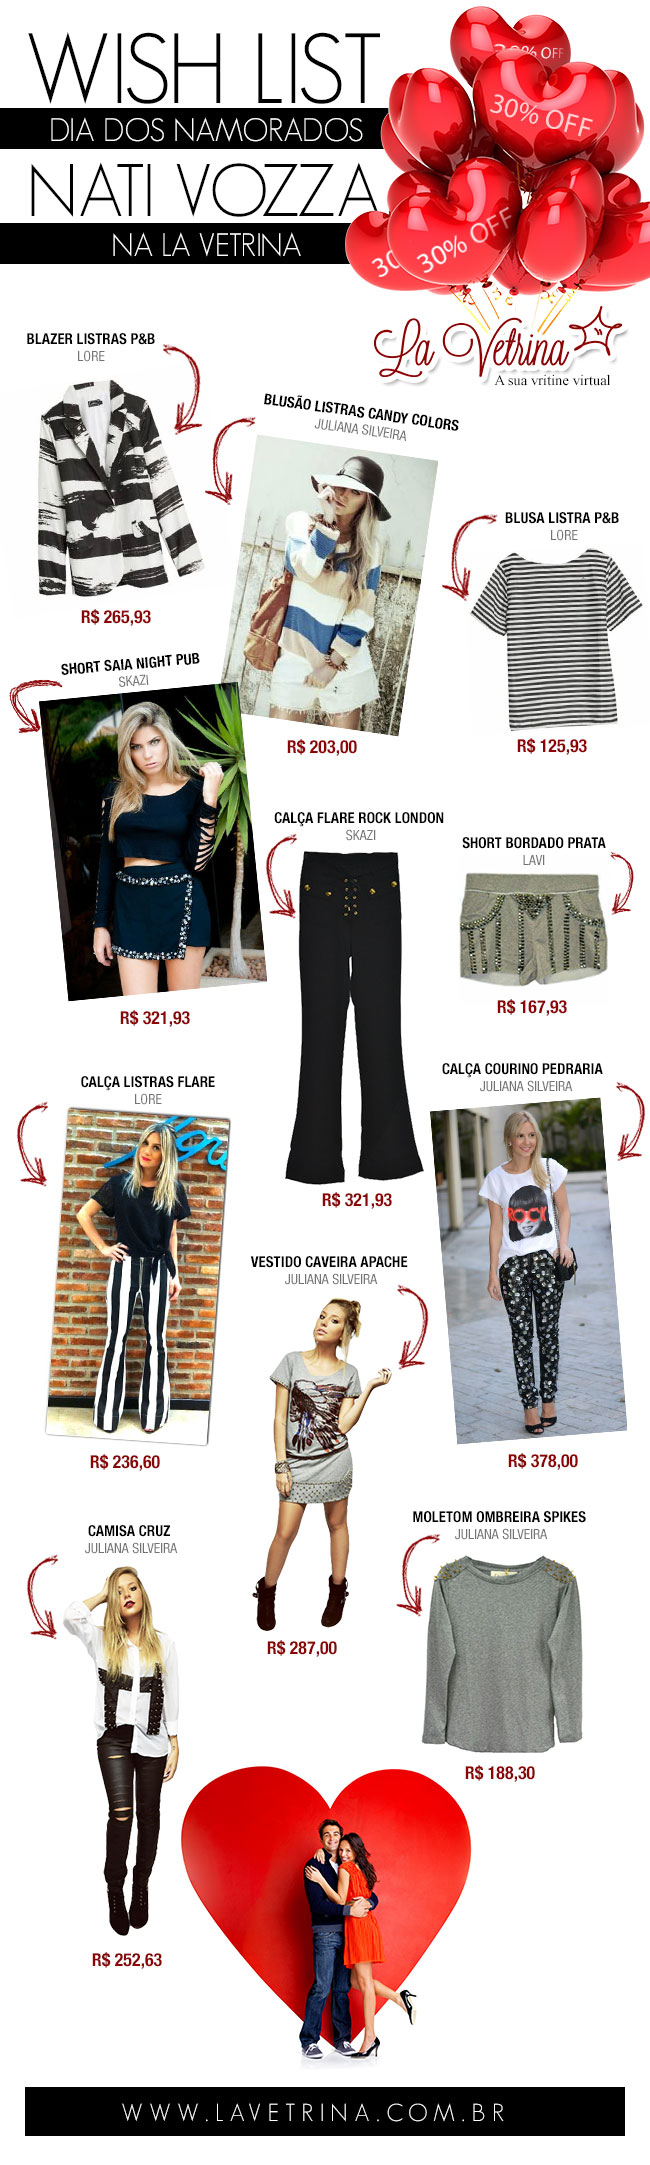 glam4you-nati-vozza-wishlist-dia-dos-namorados